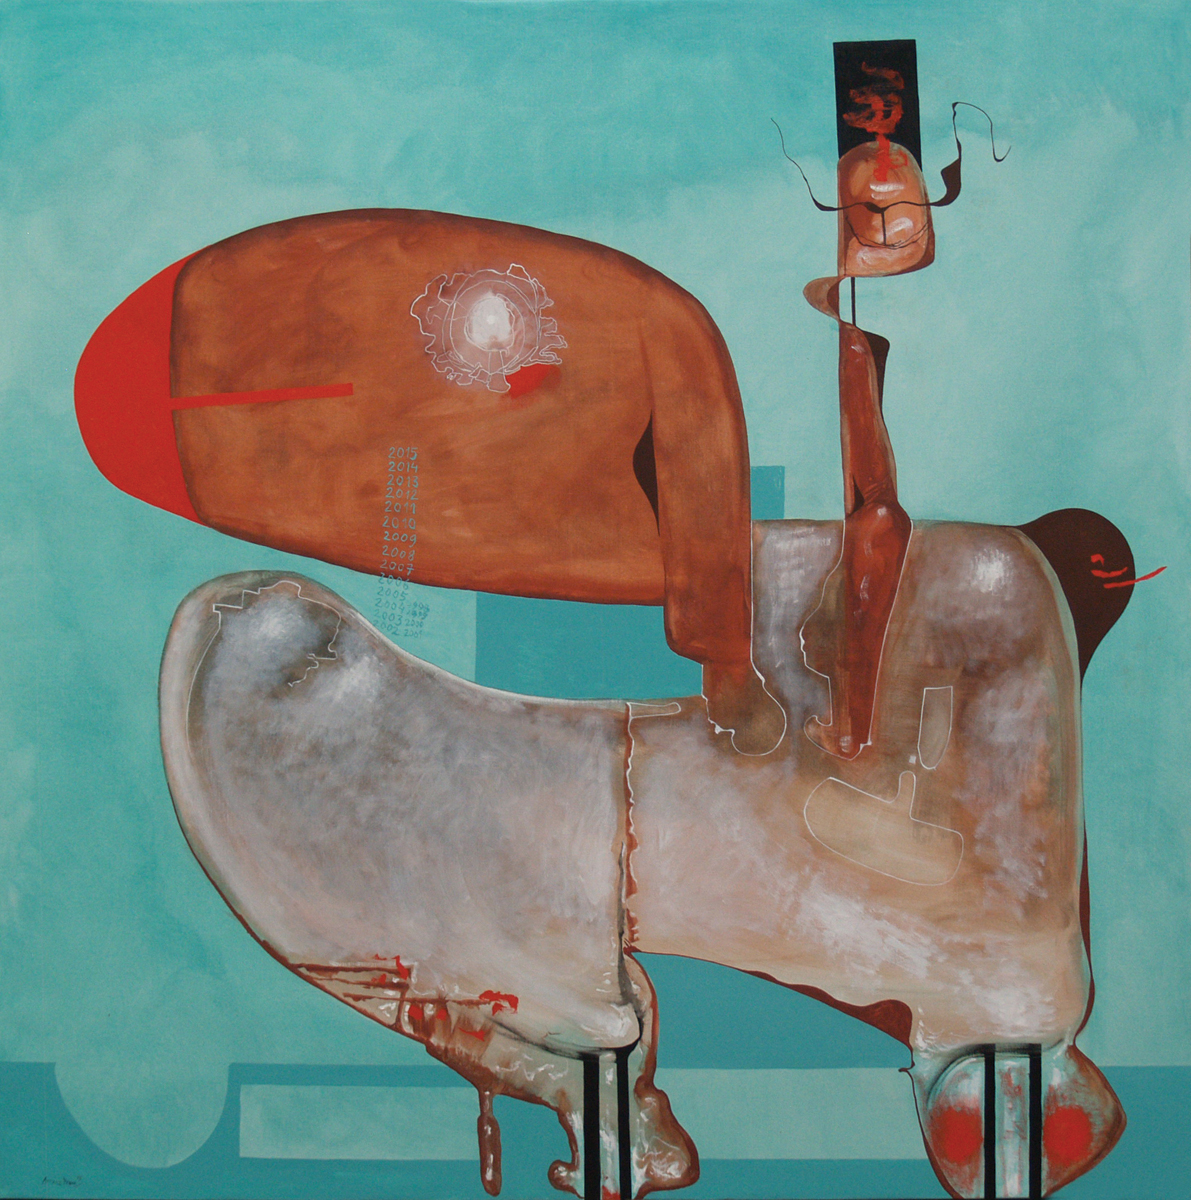 Arre tatano IV, oil on canvas, 78 x 78 in, 2015